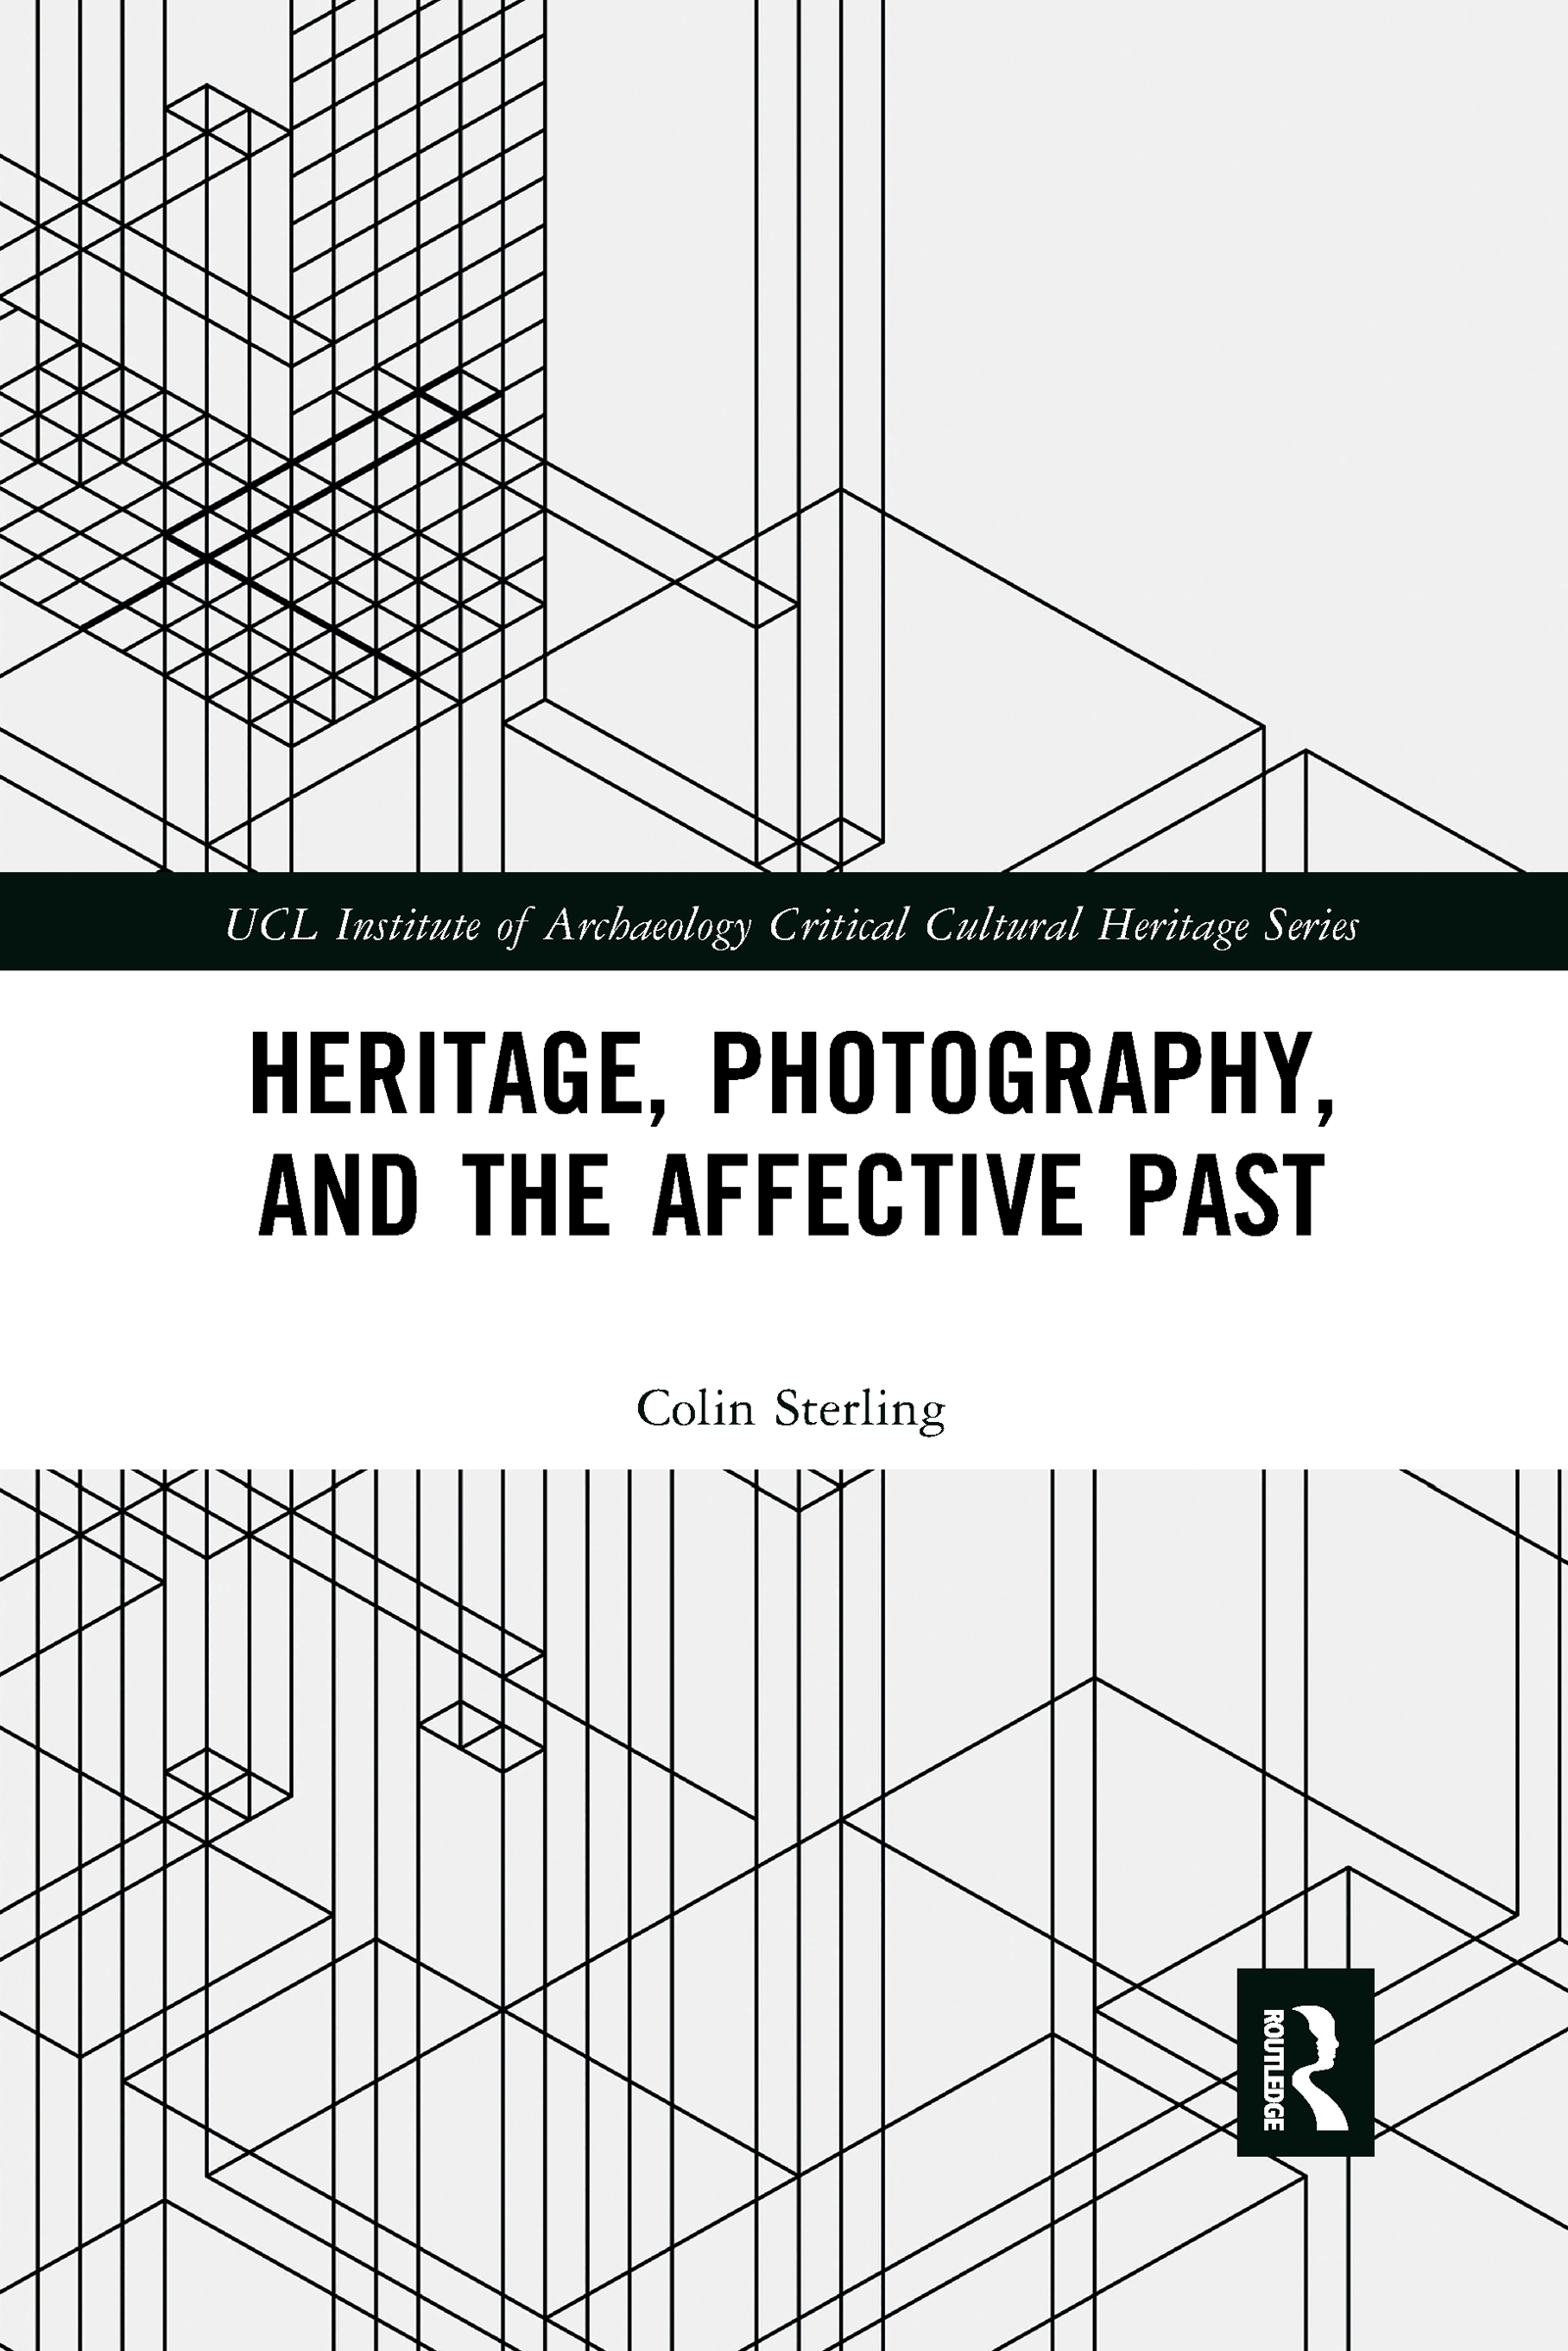 Heritage, Photography, and the Affective Past